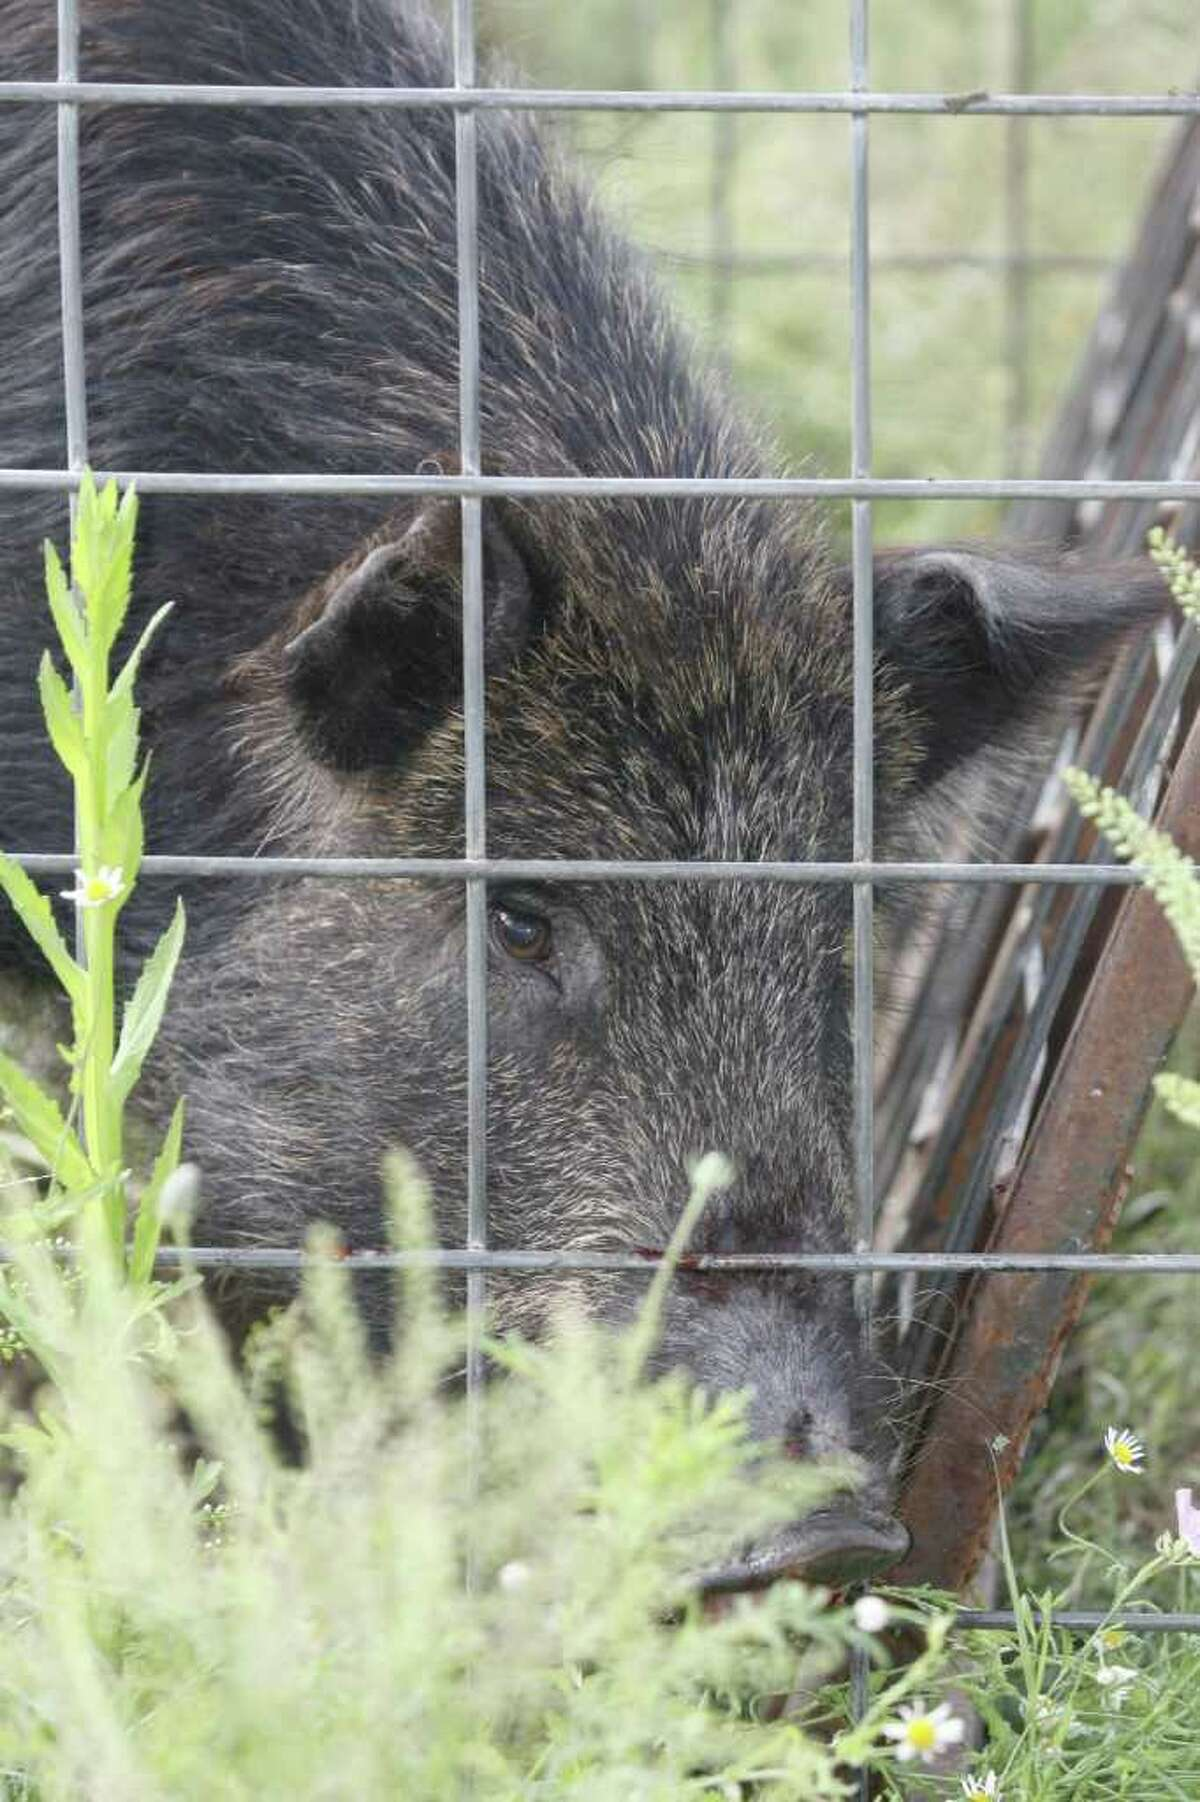 With a population estimated at more than 2 million, feral hogs arguably are the most high profile of a highly destructive invasive species in Texas. But the state is home to hundreds of invasives that do billions of dollars of damage each year.